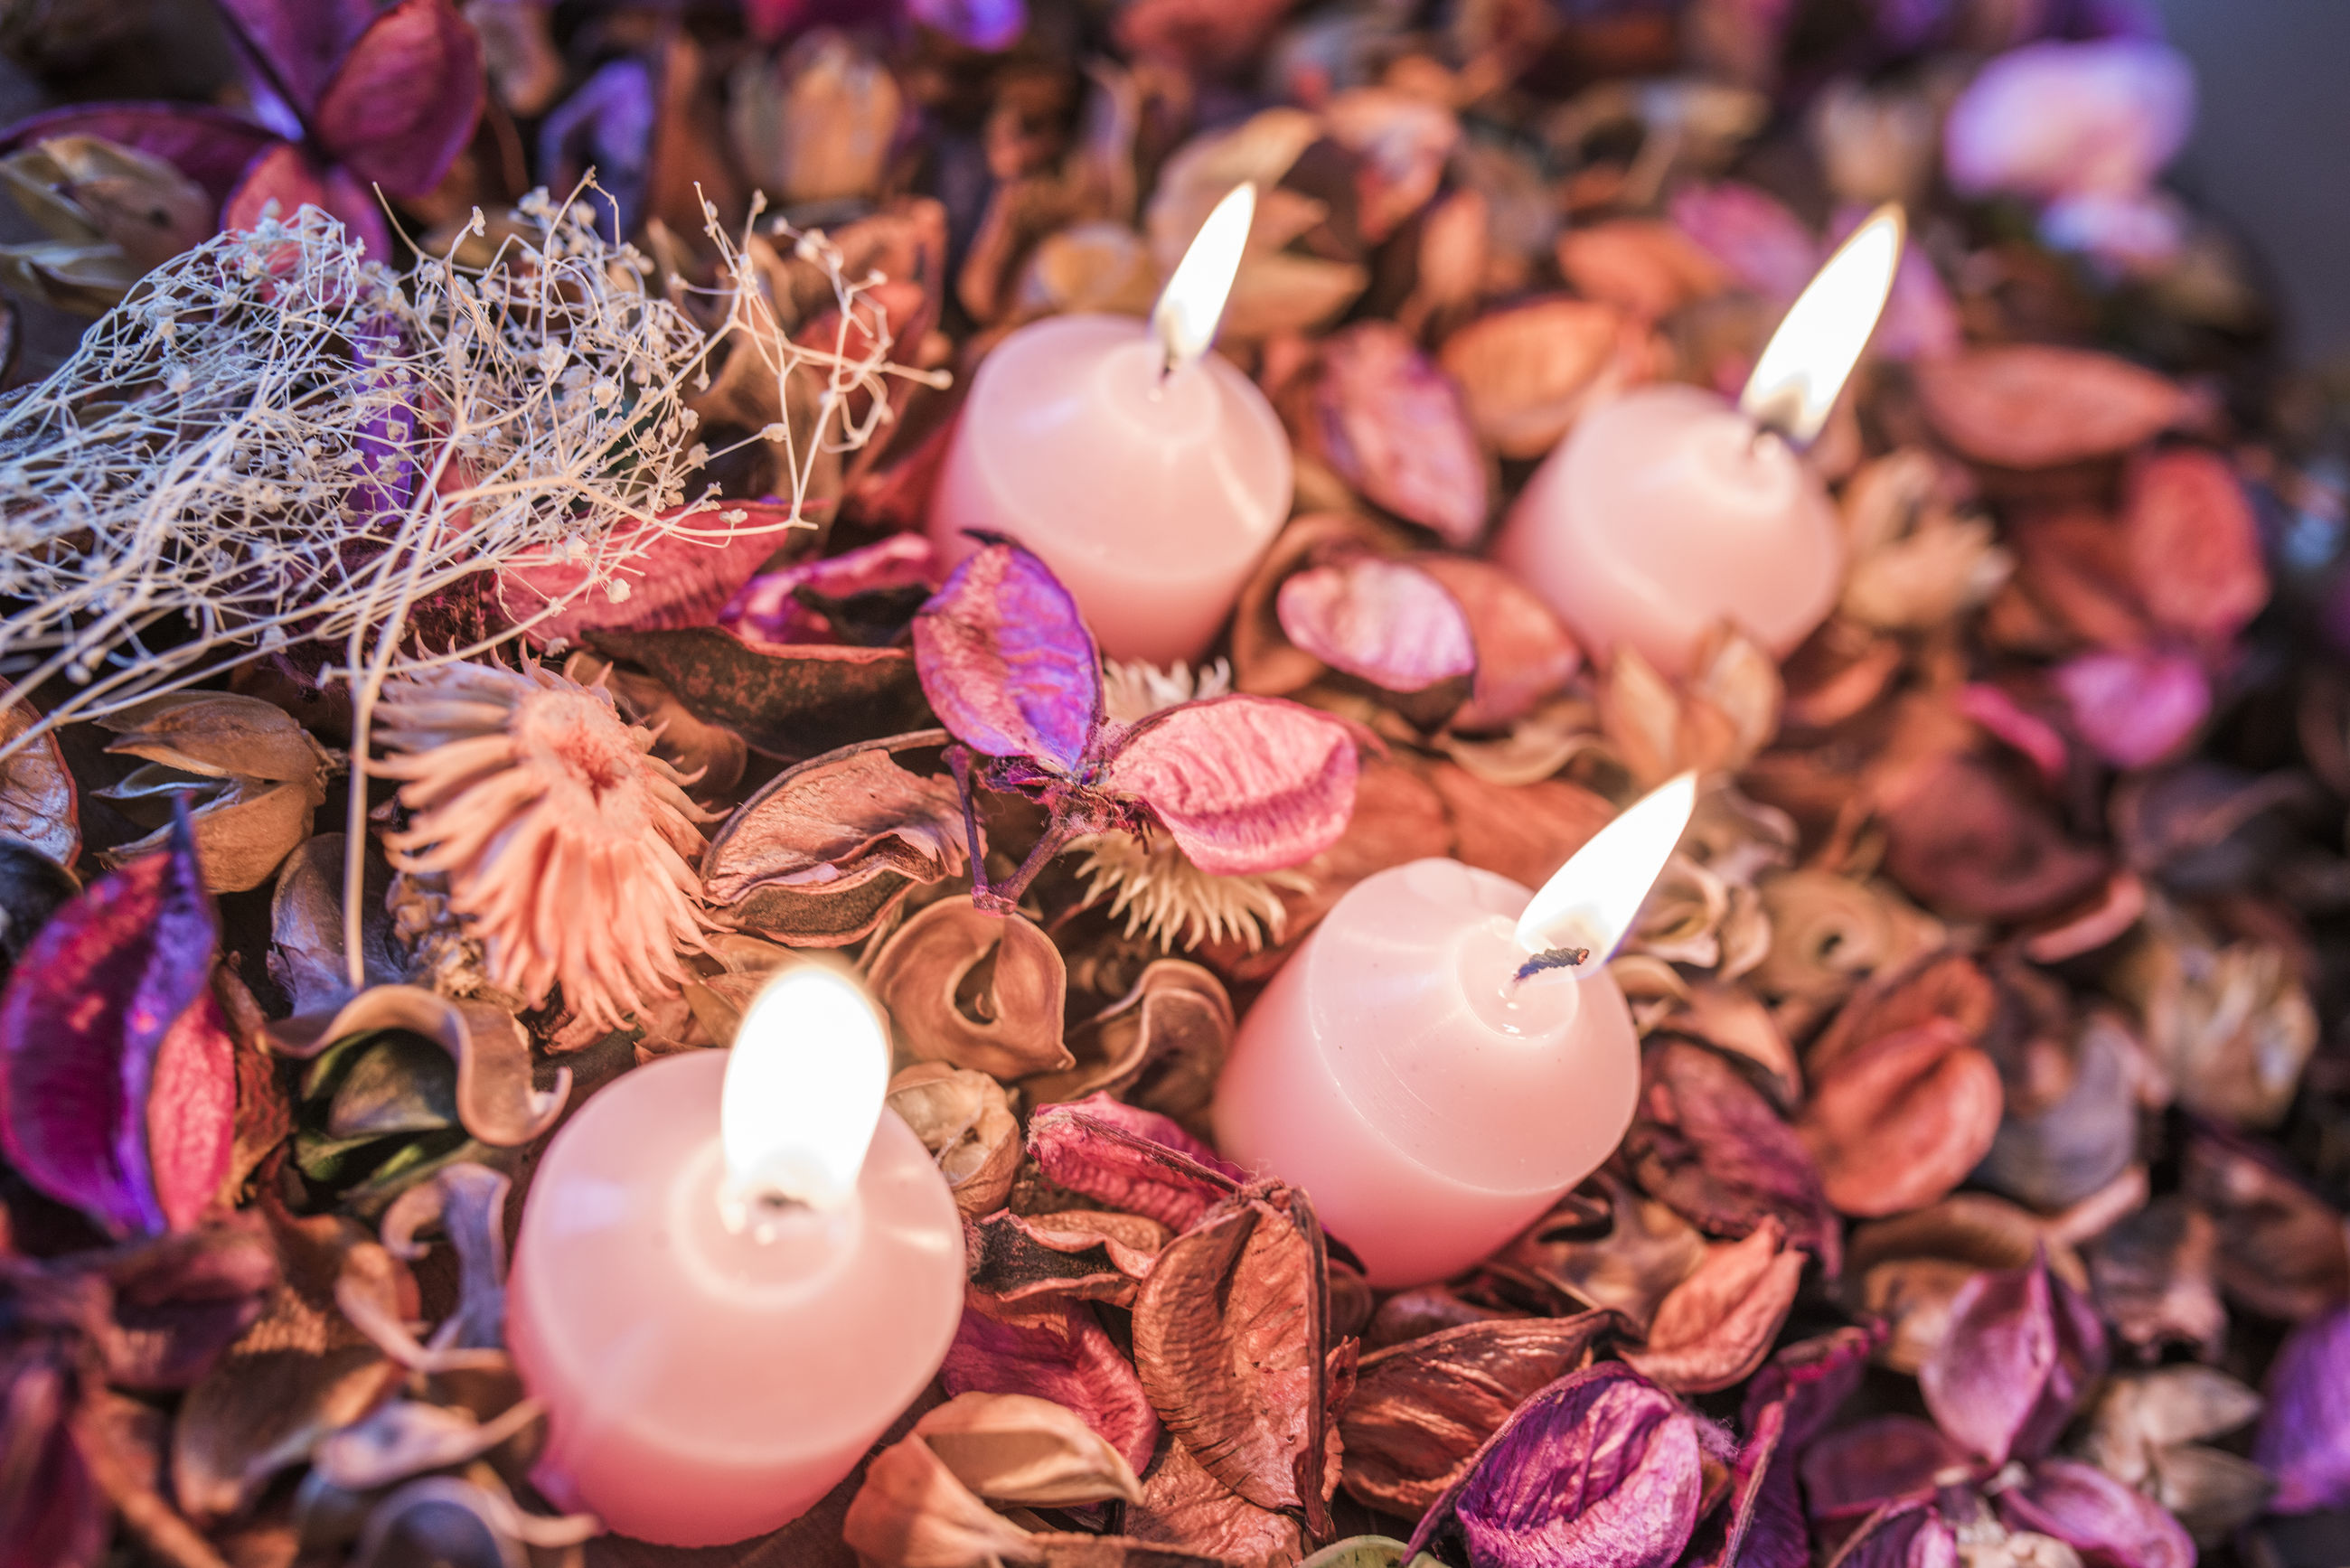 High angle view of illuminated candles on flower petals